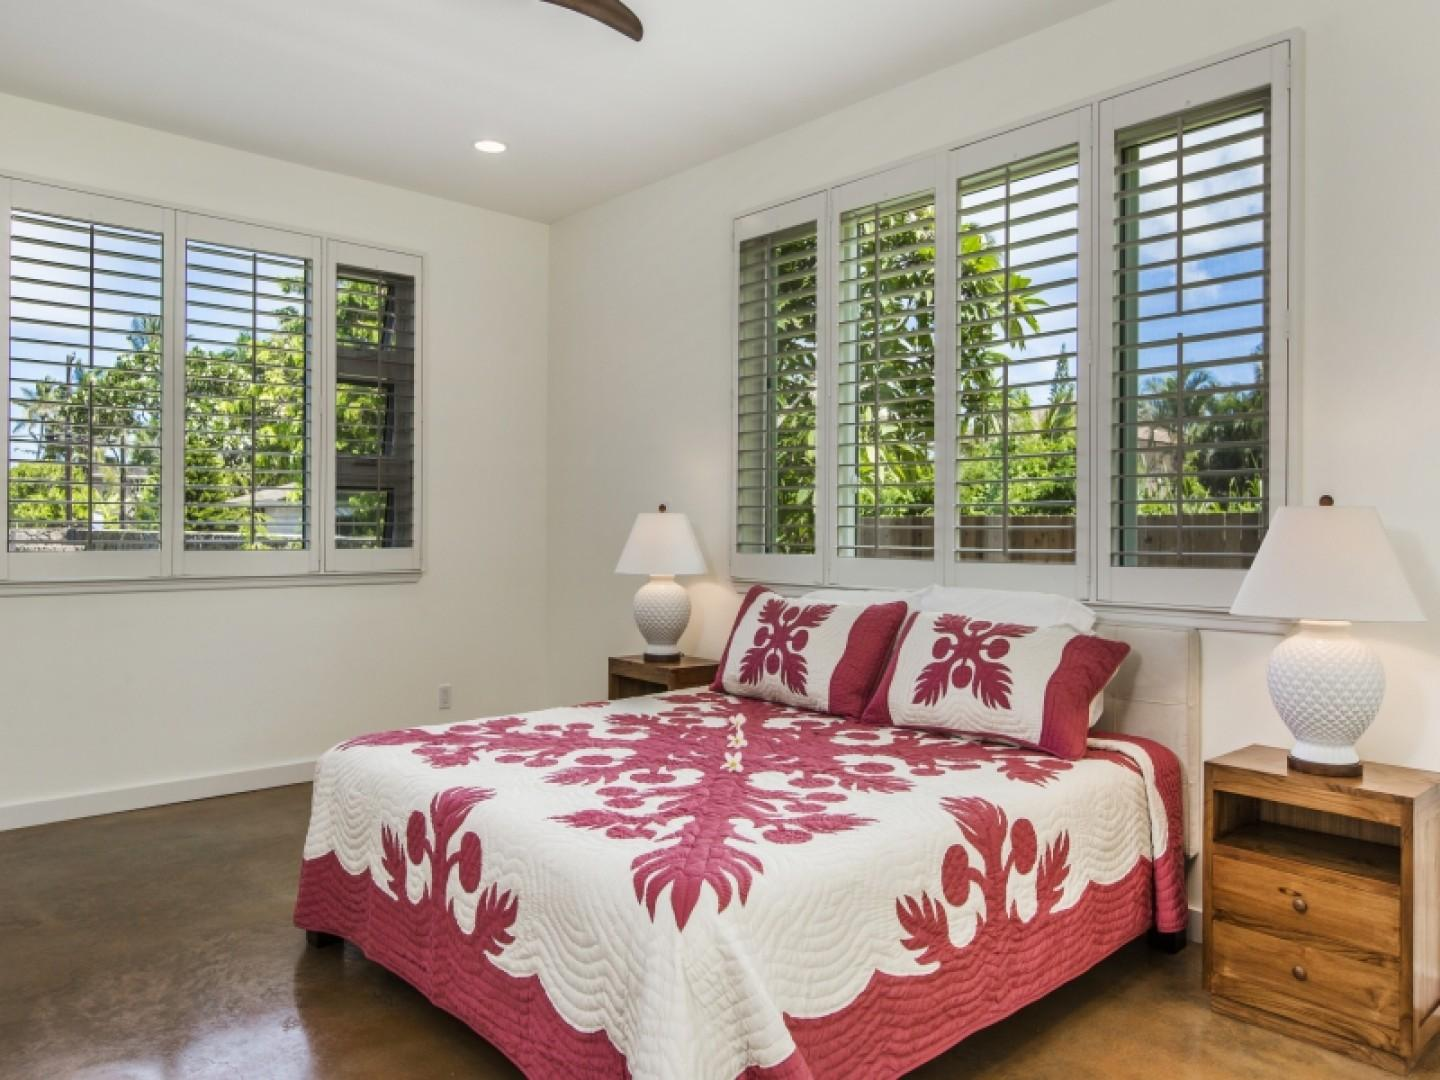 Adjustable plantation shutters allow light in according to your liking.